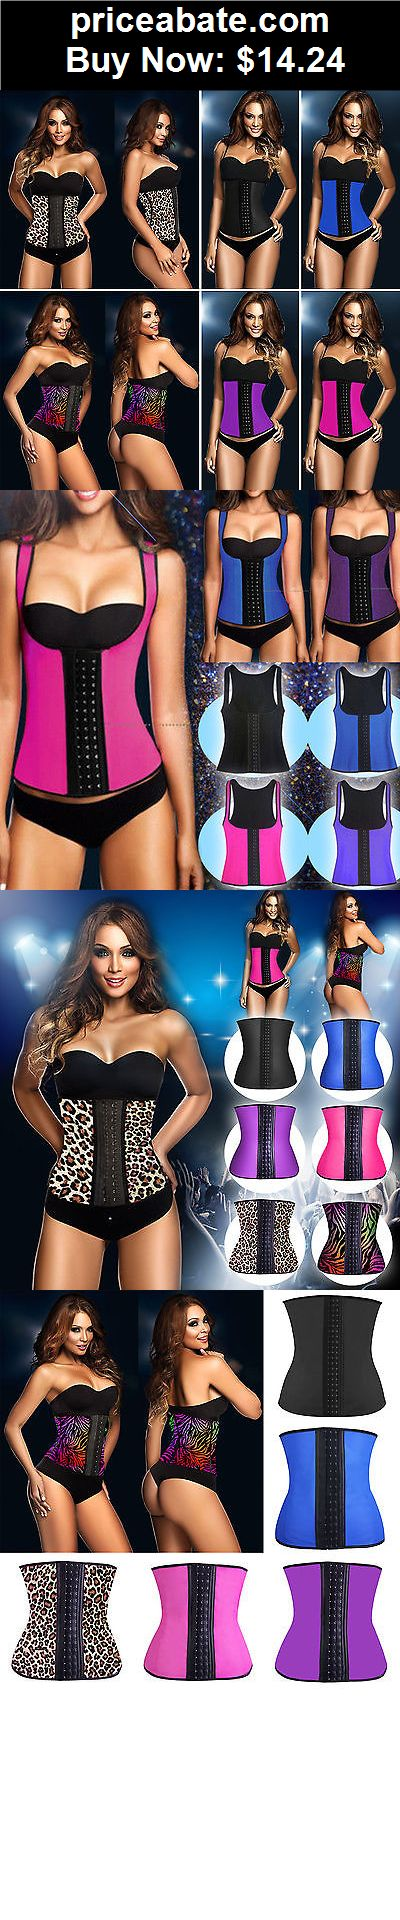 Women-Shapewear: Women Latex Rubber Waist Training Cincher Underbust Corset Body Shaper Shapewear - BUY IT NOW ONLY $14.24